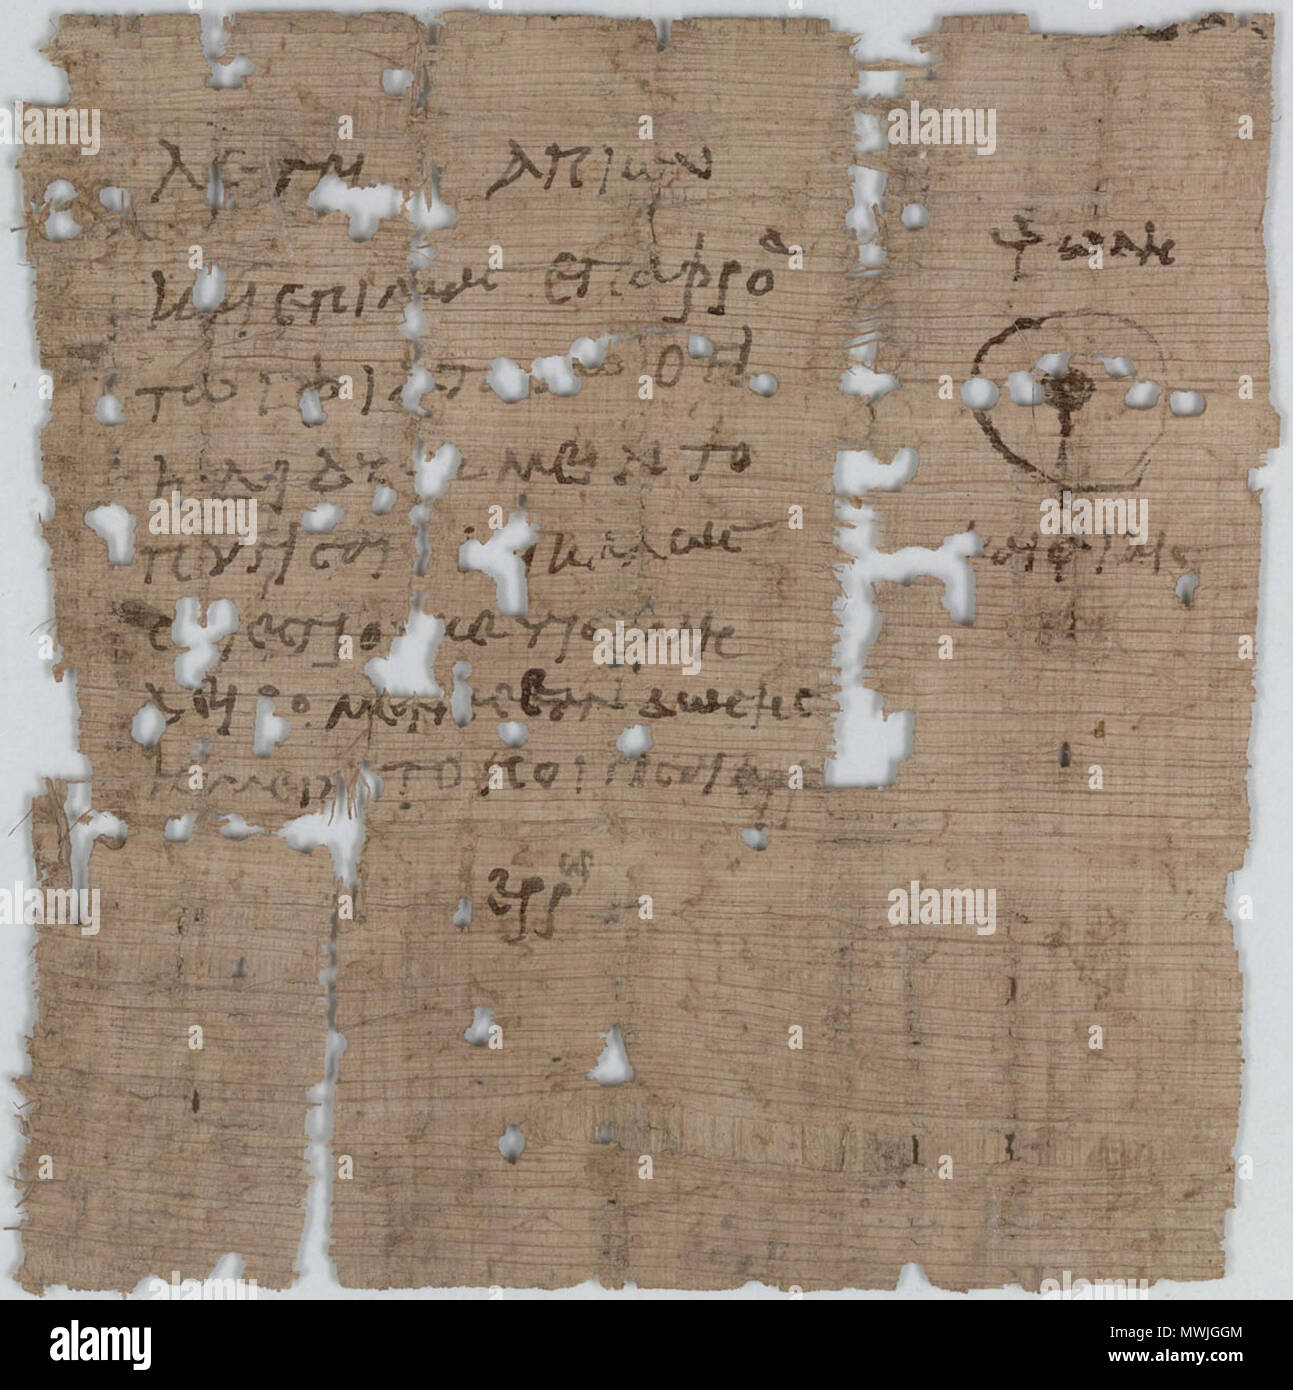 """. English: Papyrus Oxyrhychus 3070 - Indecent Proposal: """"Apion and Epimas say to their very dear Epaphroditus: If you let us bugger you and it's OK with you, we shall stop thrashing you — if you let us bugger you. Keep well! Keep well!"""" . 1st century. Unknown 467 Papyrus Oxyrhychus 3070 - Indecent Proposal - Stock Image"""